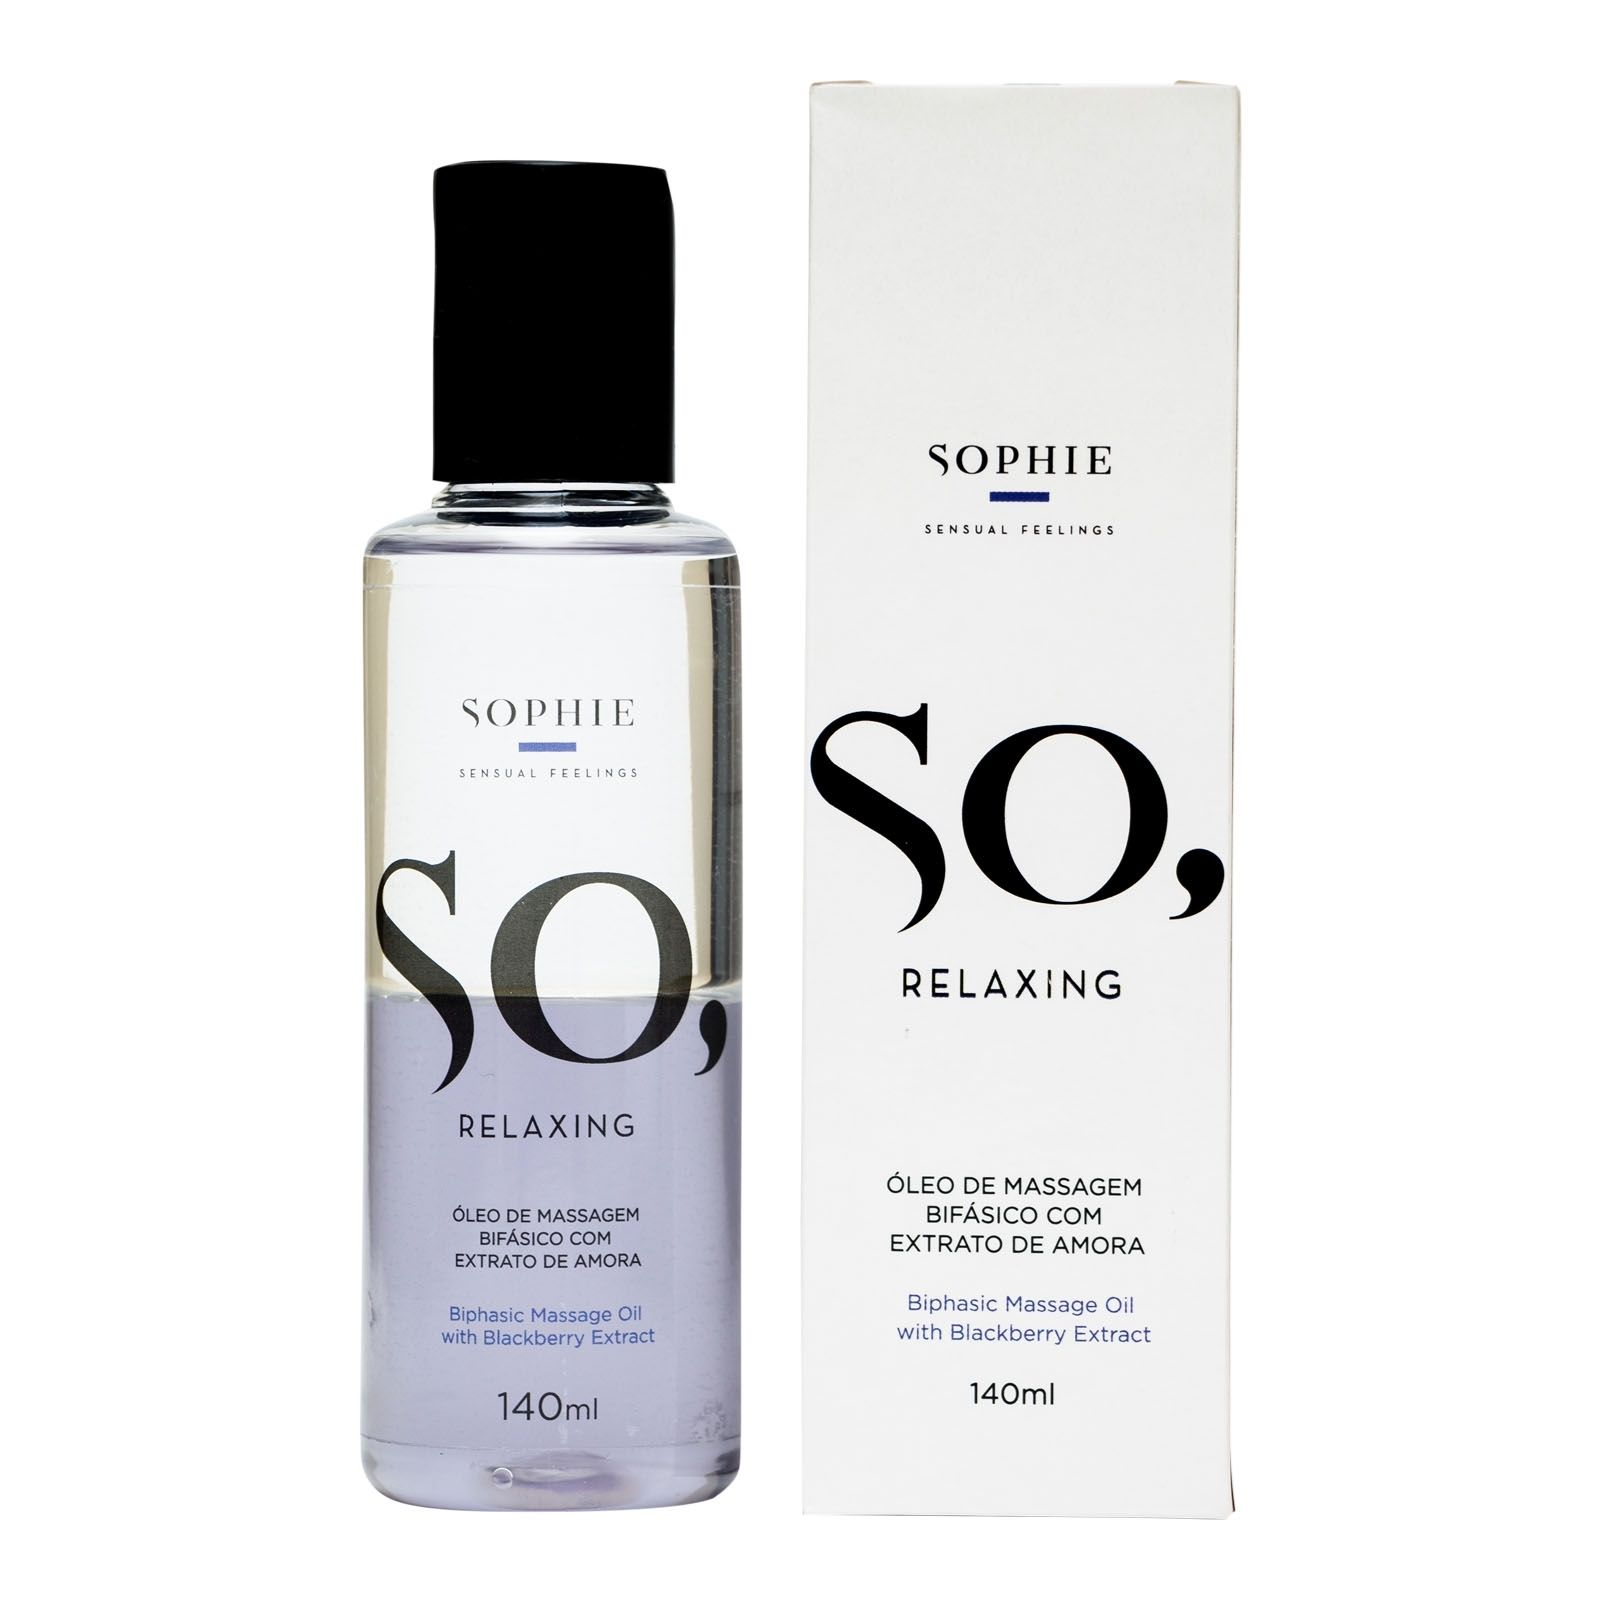 Óleo de Massagem Bifásico - So Relaxing 140ml - Sophie